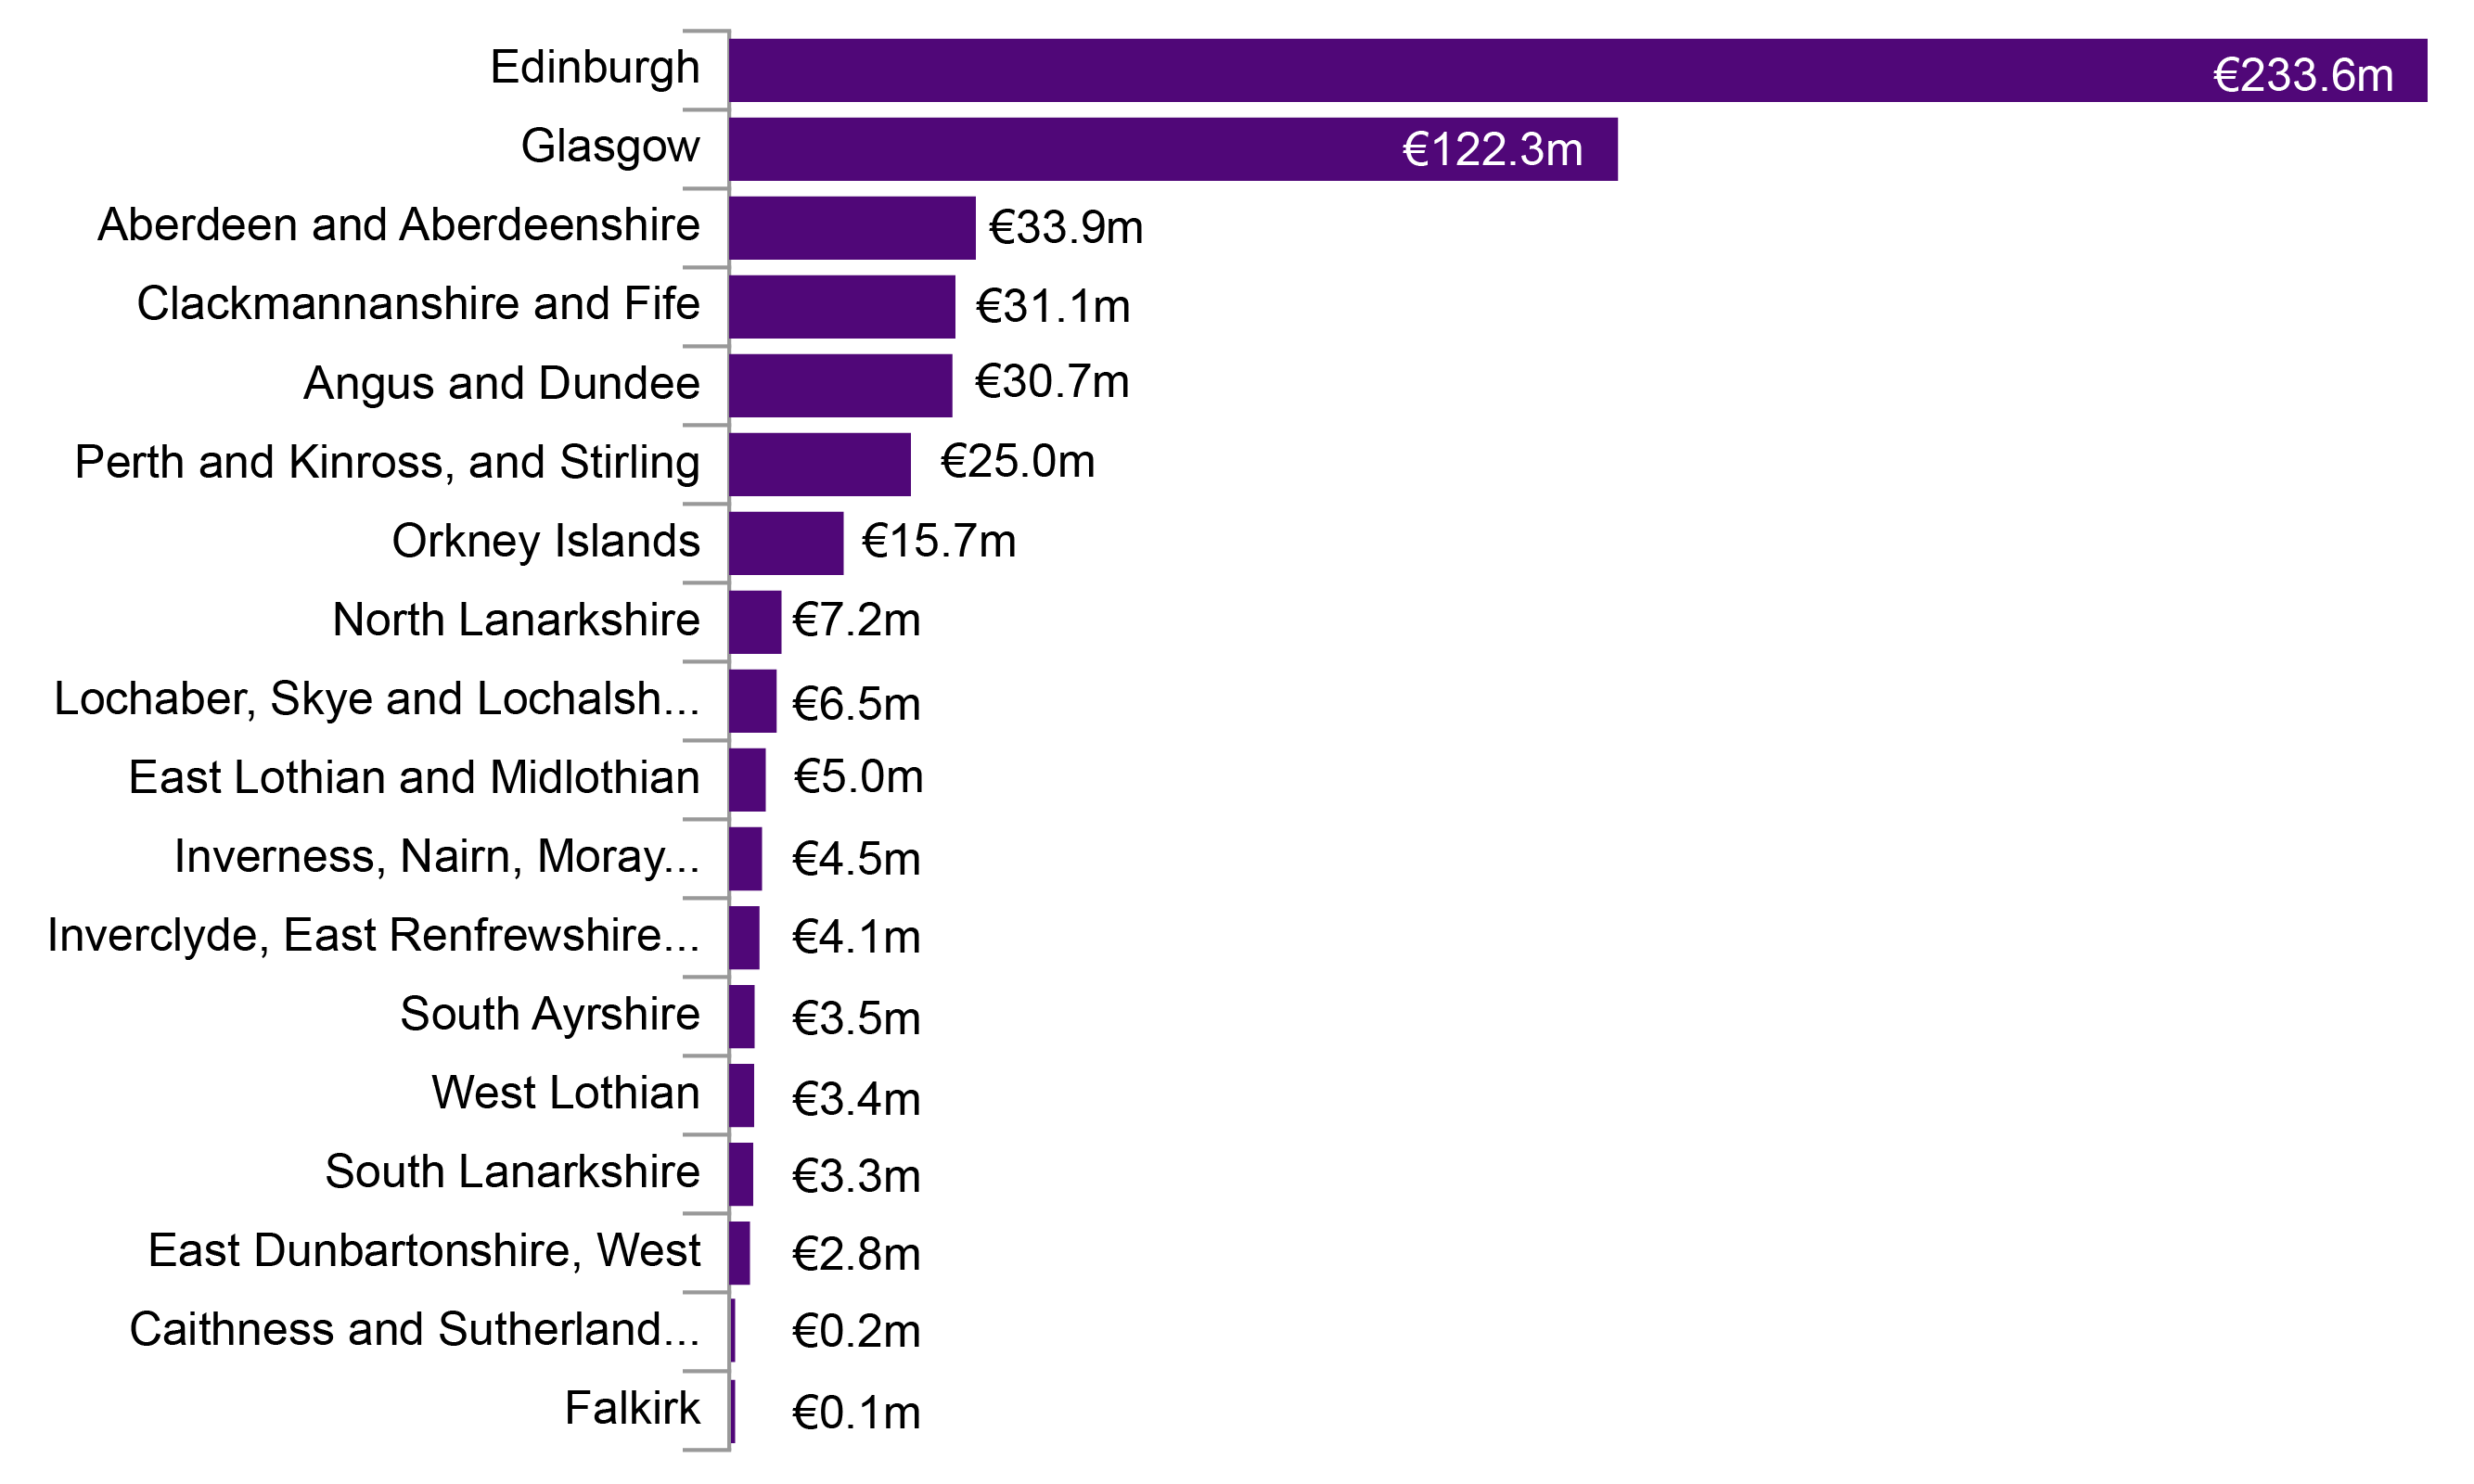 Bar chart showing the value of Horizon 2020 funding by region of Scotland.